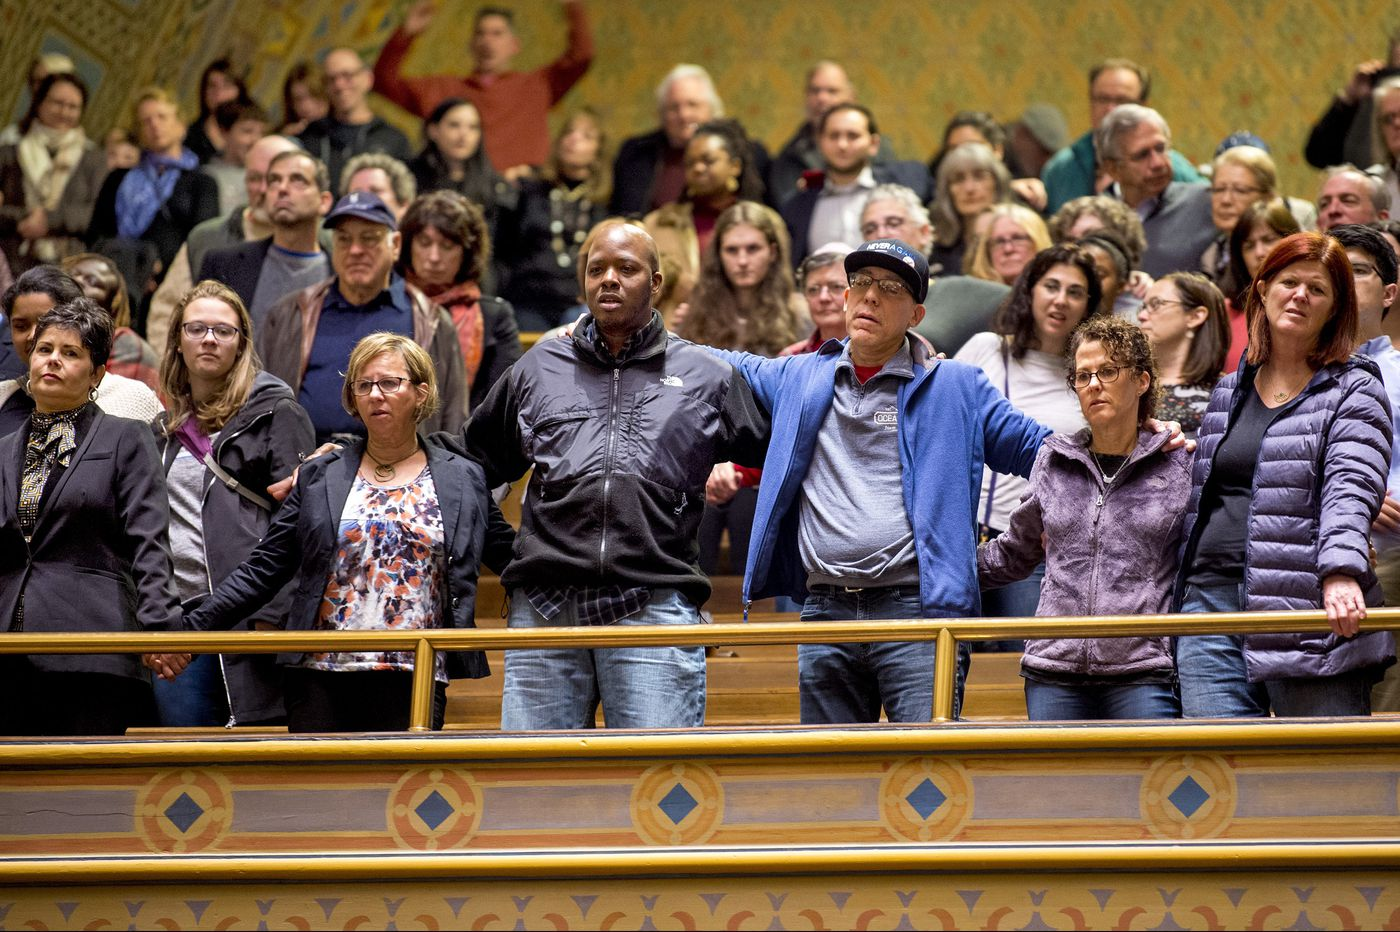 Interfaith crowd packs a Philadelphia temple to show solidarity with Pittsburgh